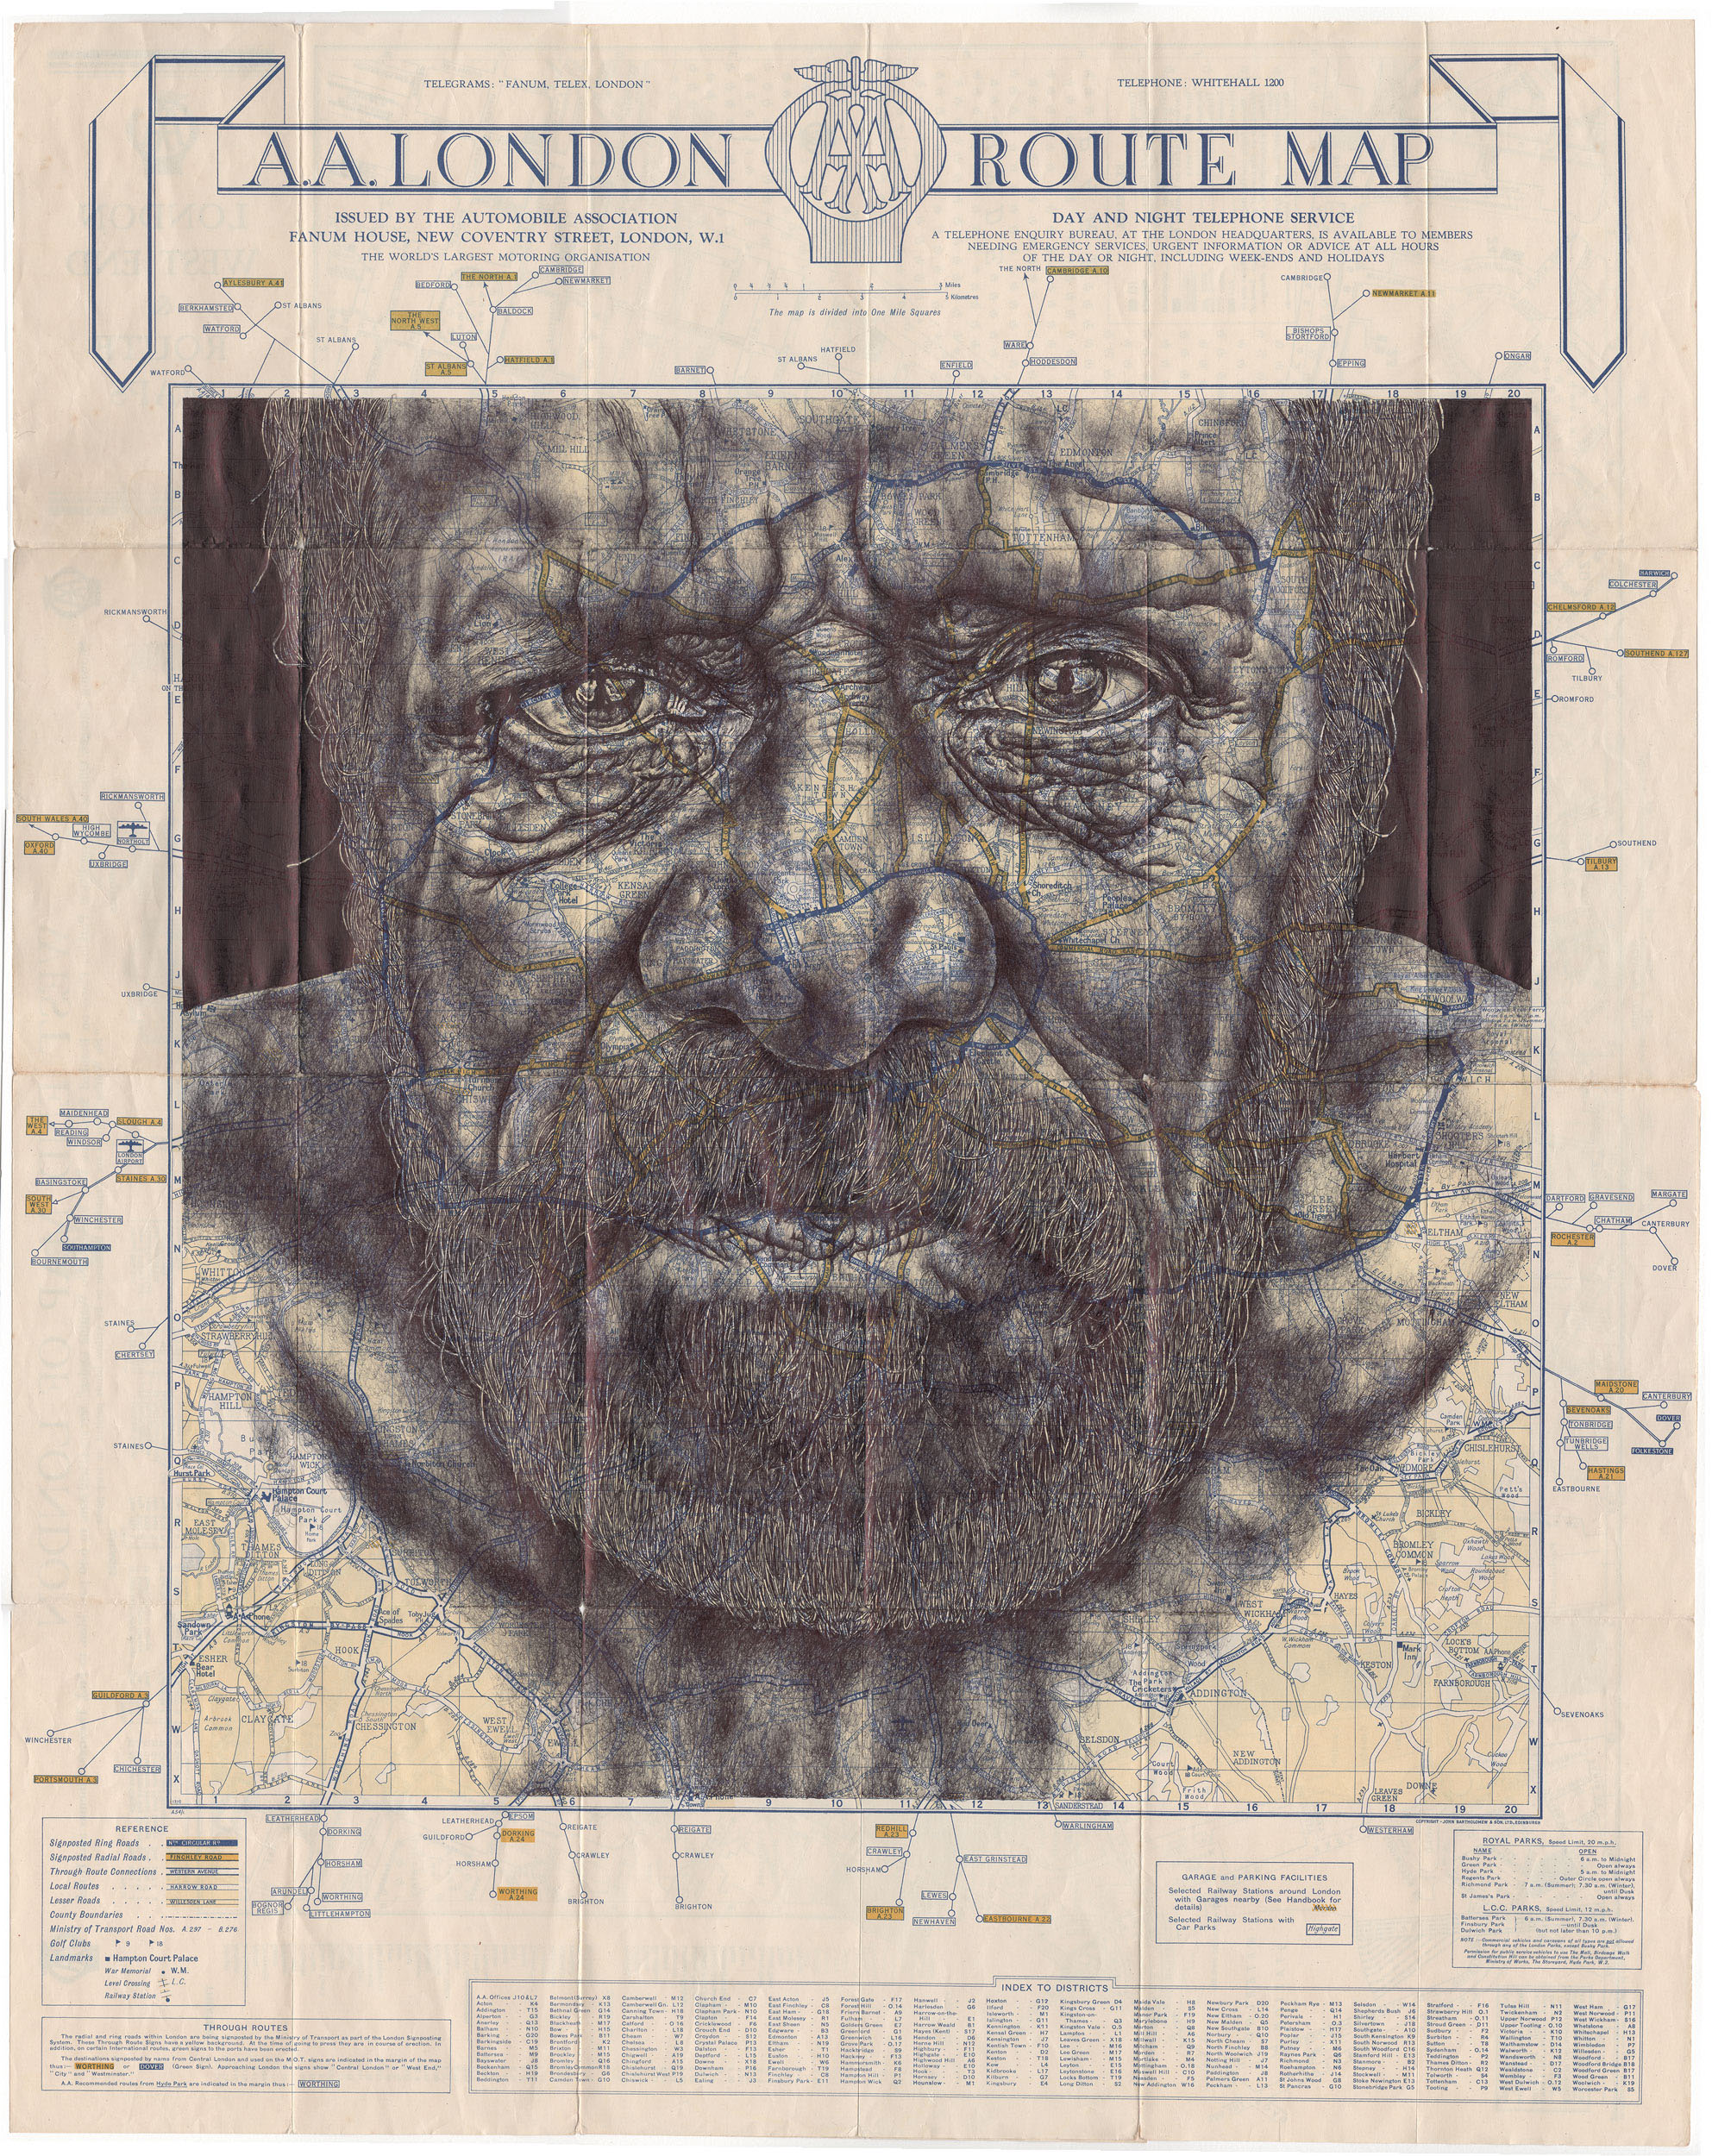 Illustration: Bic Biro Drawings on Antique Maps